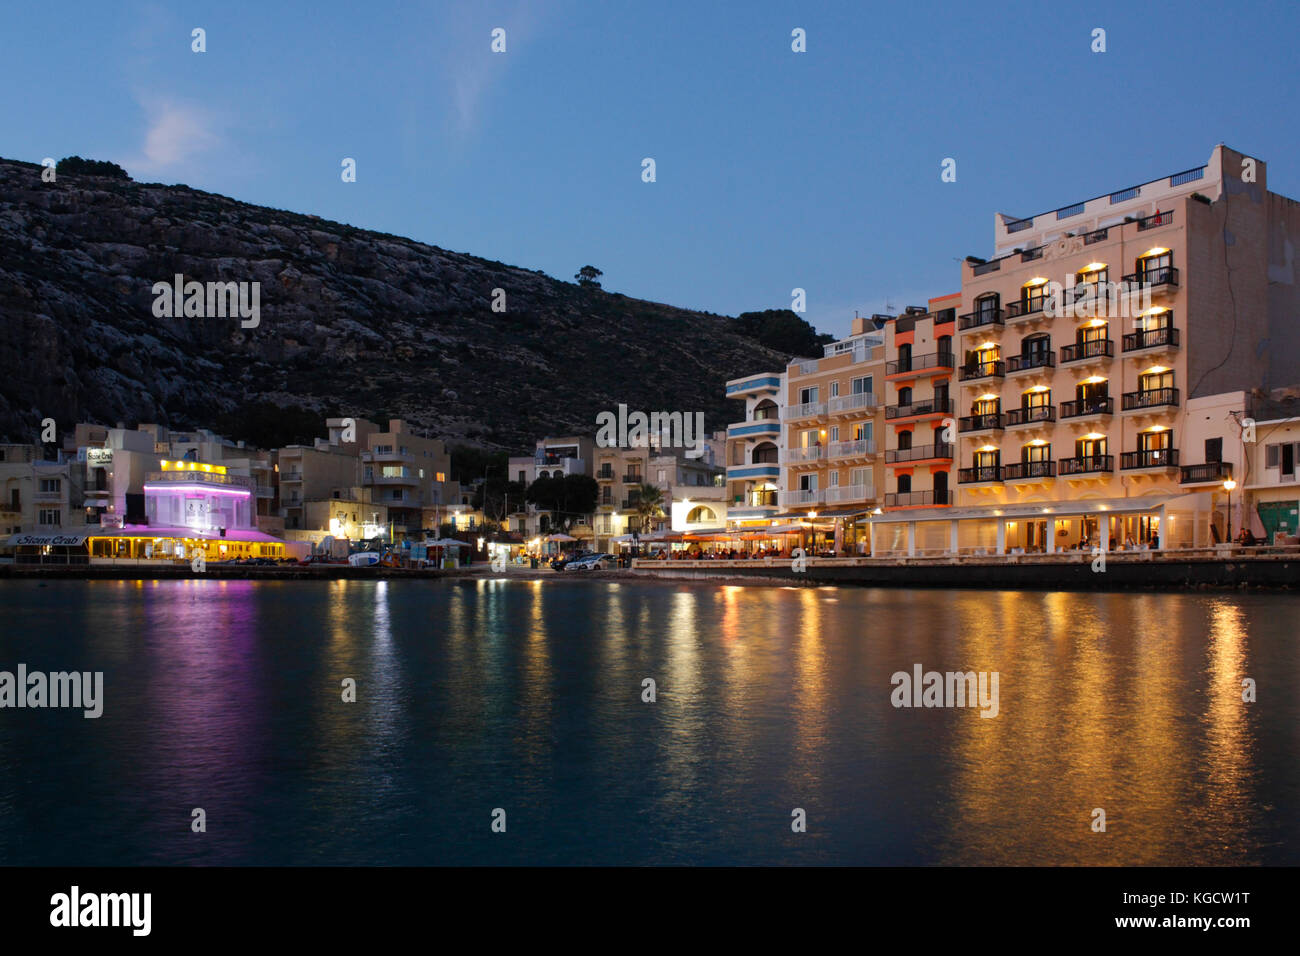 The seaside village of Xlendi (pronounced Shlendy) in Gozo, Malta, at dusk, with seafront hotels and restaurants - Stock Image